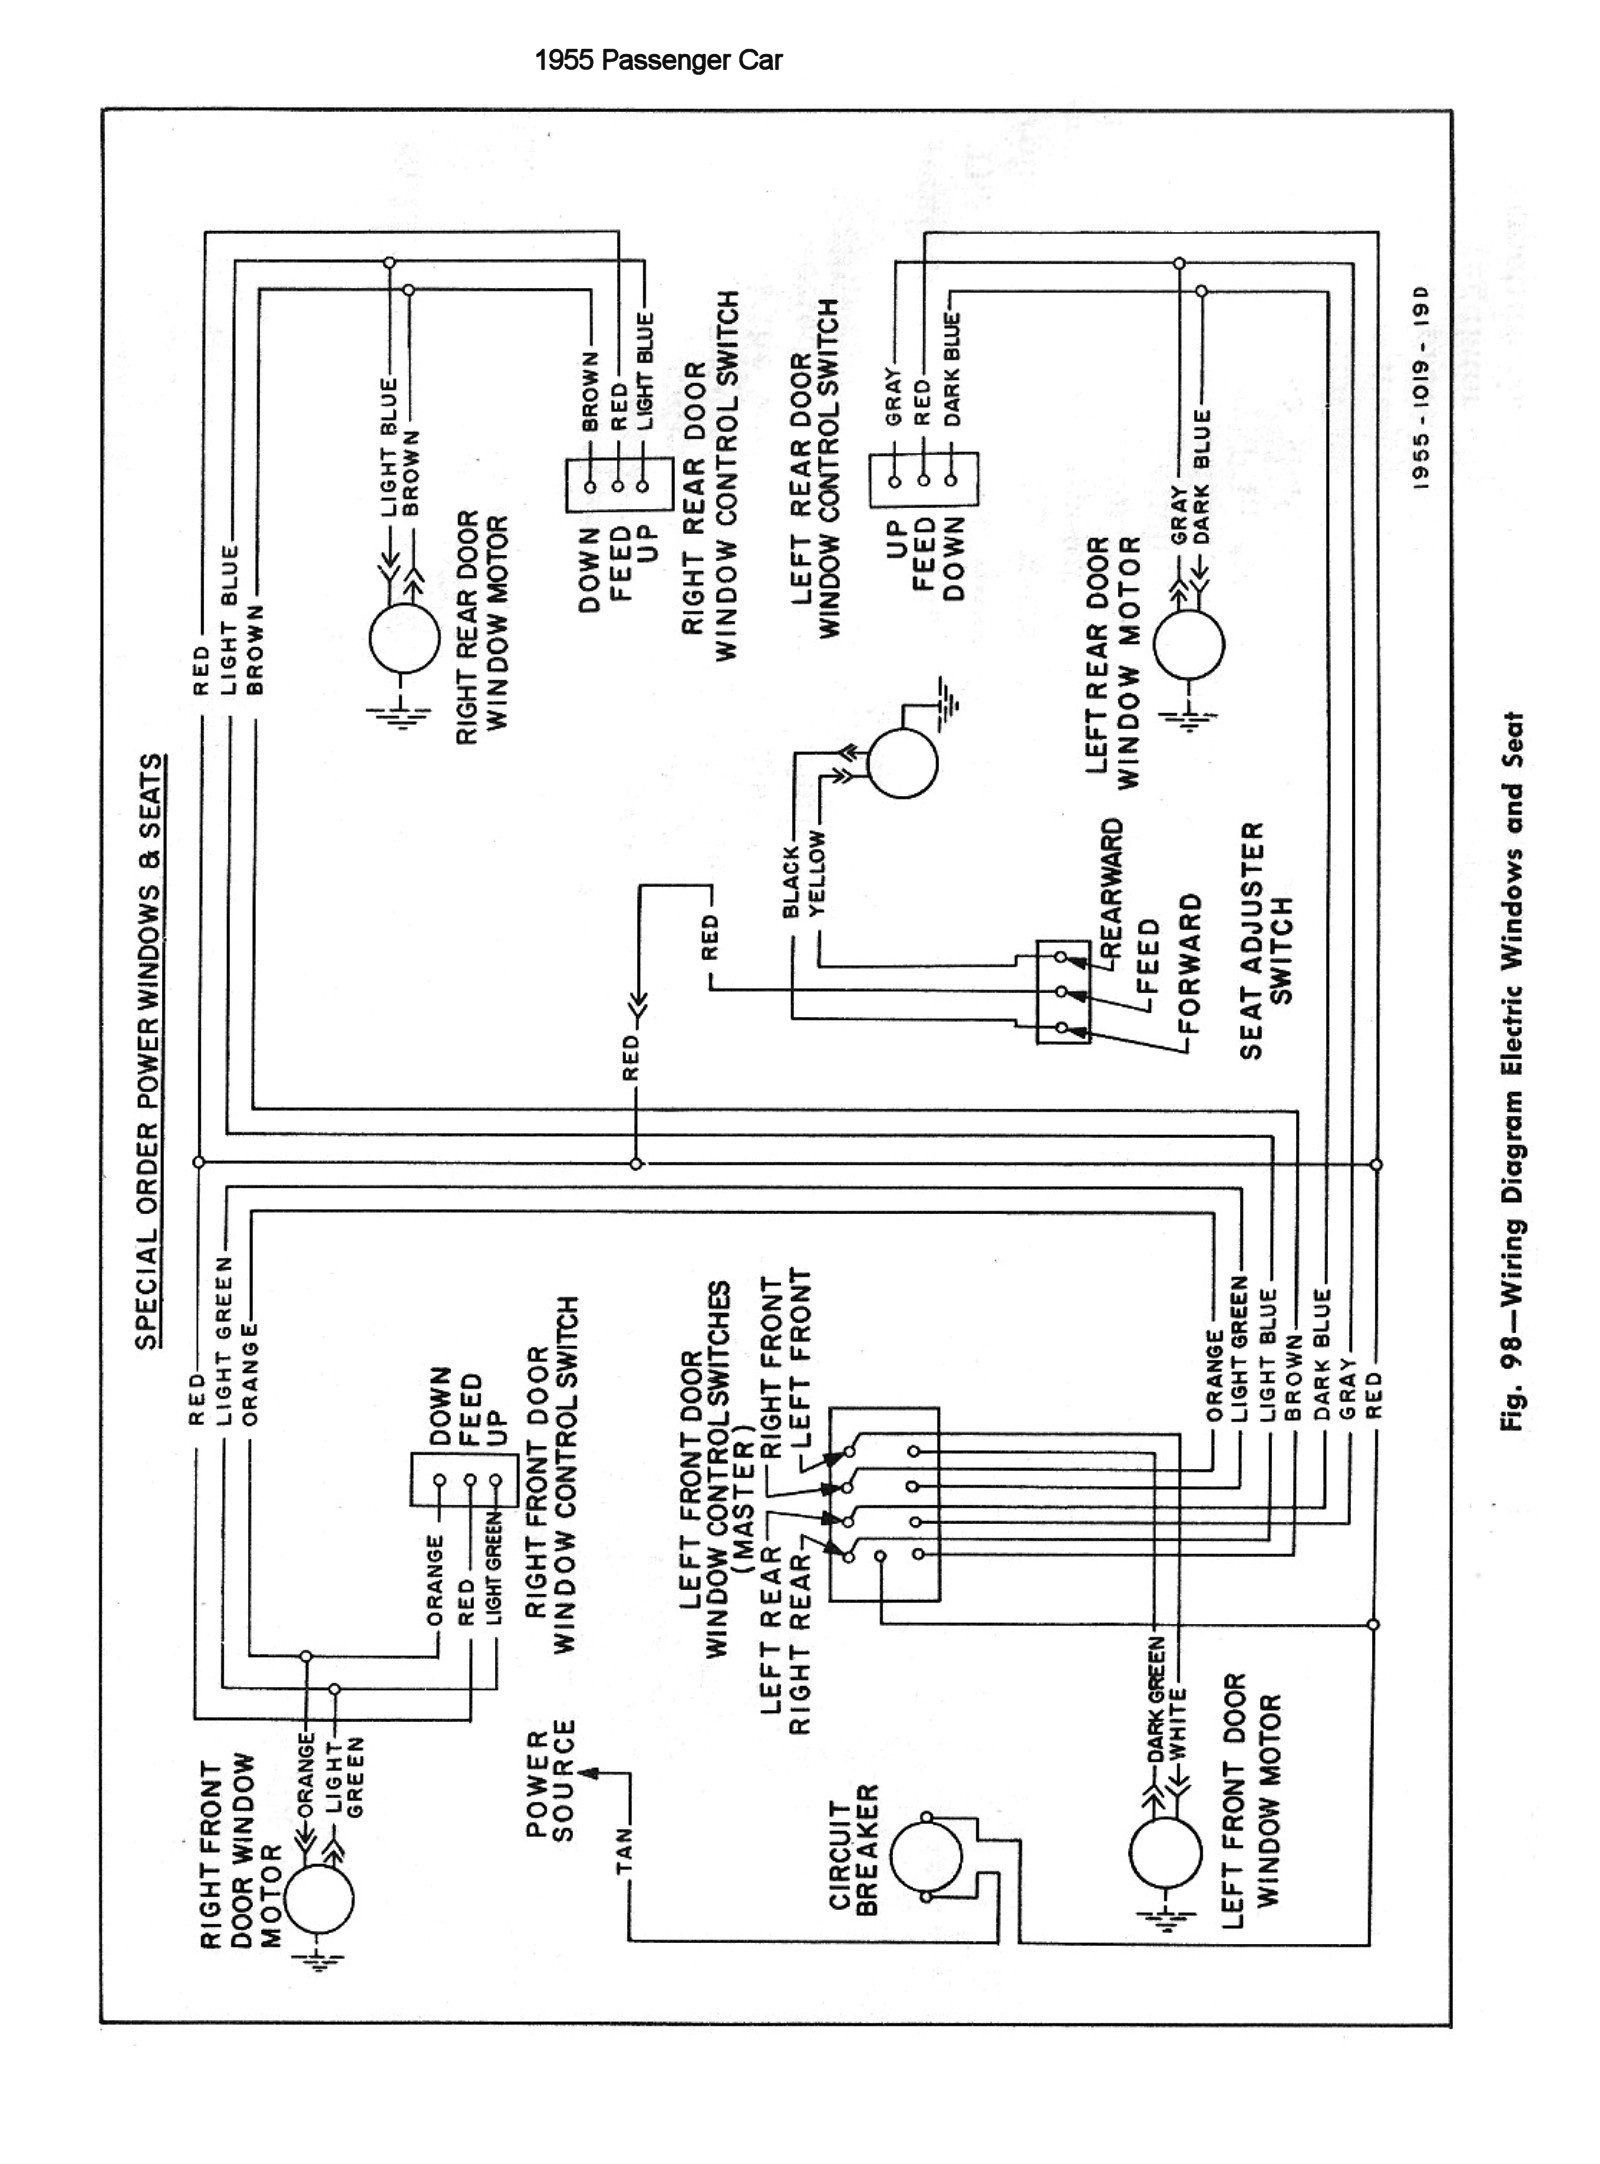 gm directional switch wiring wiring diagram img gm turn signal switch wiring [ 1600 x 2164 Pixel ]